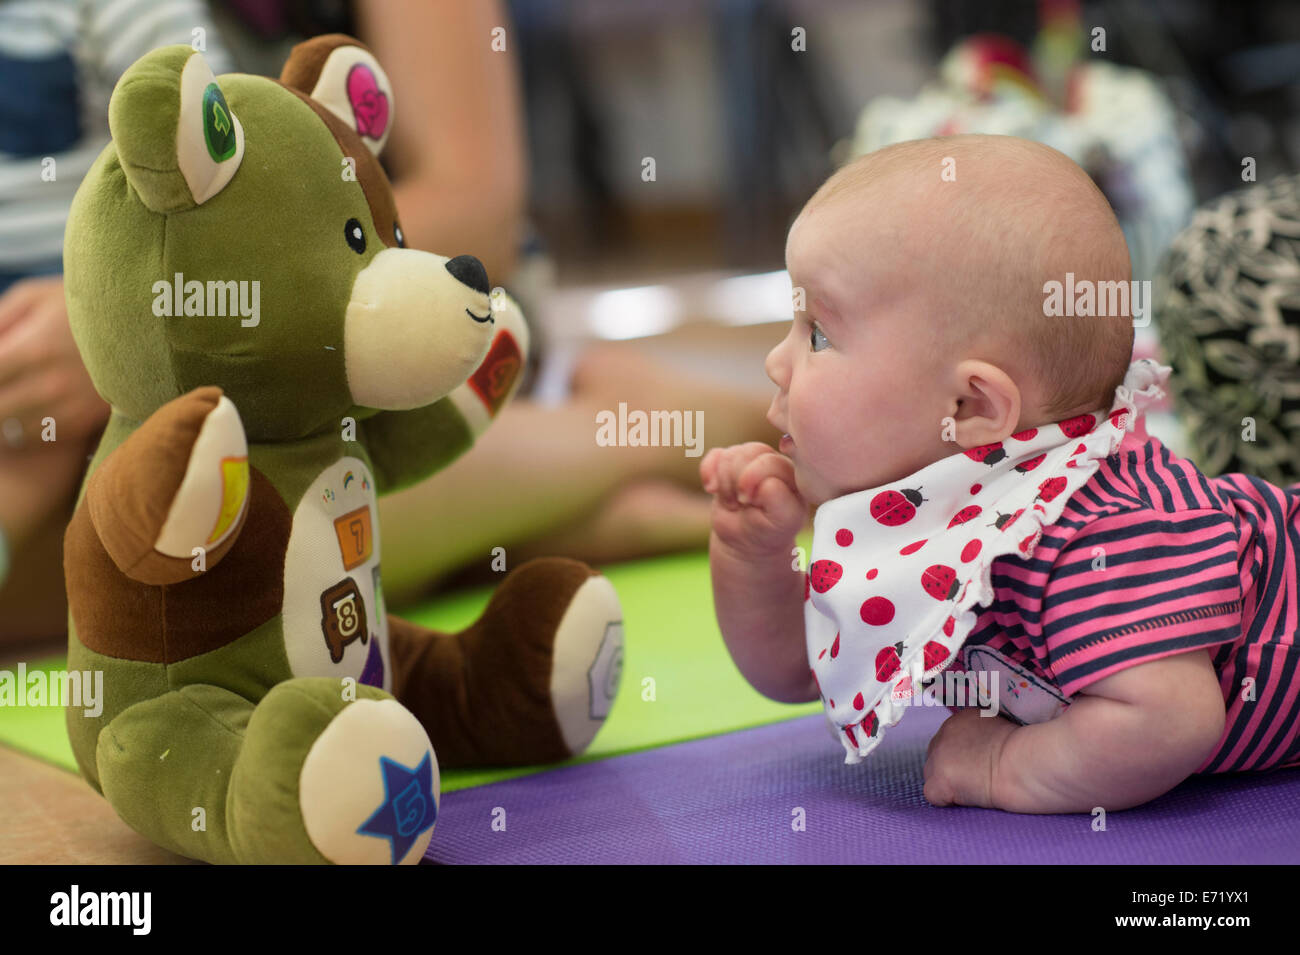 A surprised looking baby boy encountering a big soft toy teddy bear at a pre-school playgroup nursery, Wales UK - Stock Image